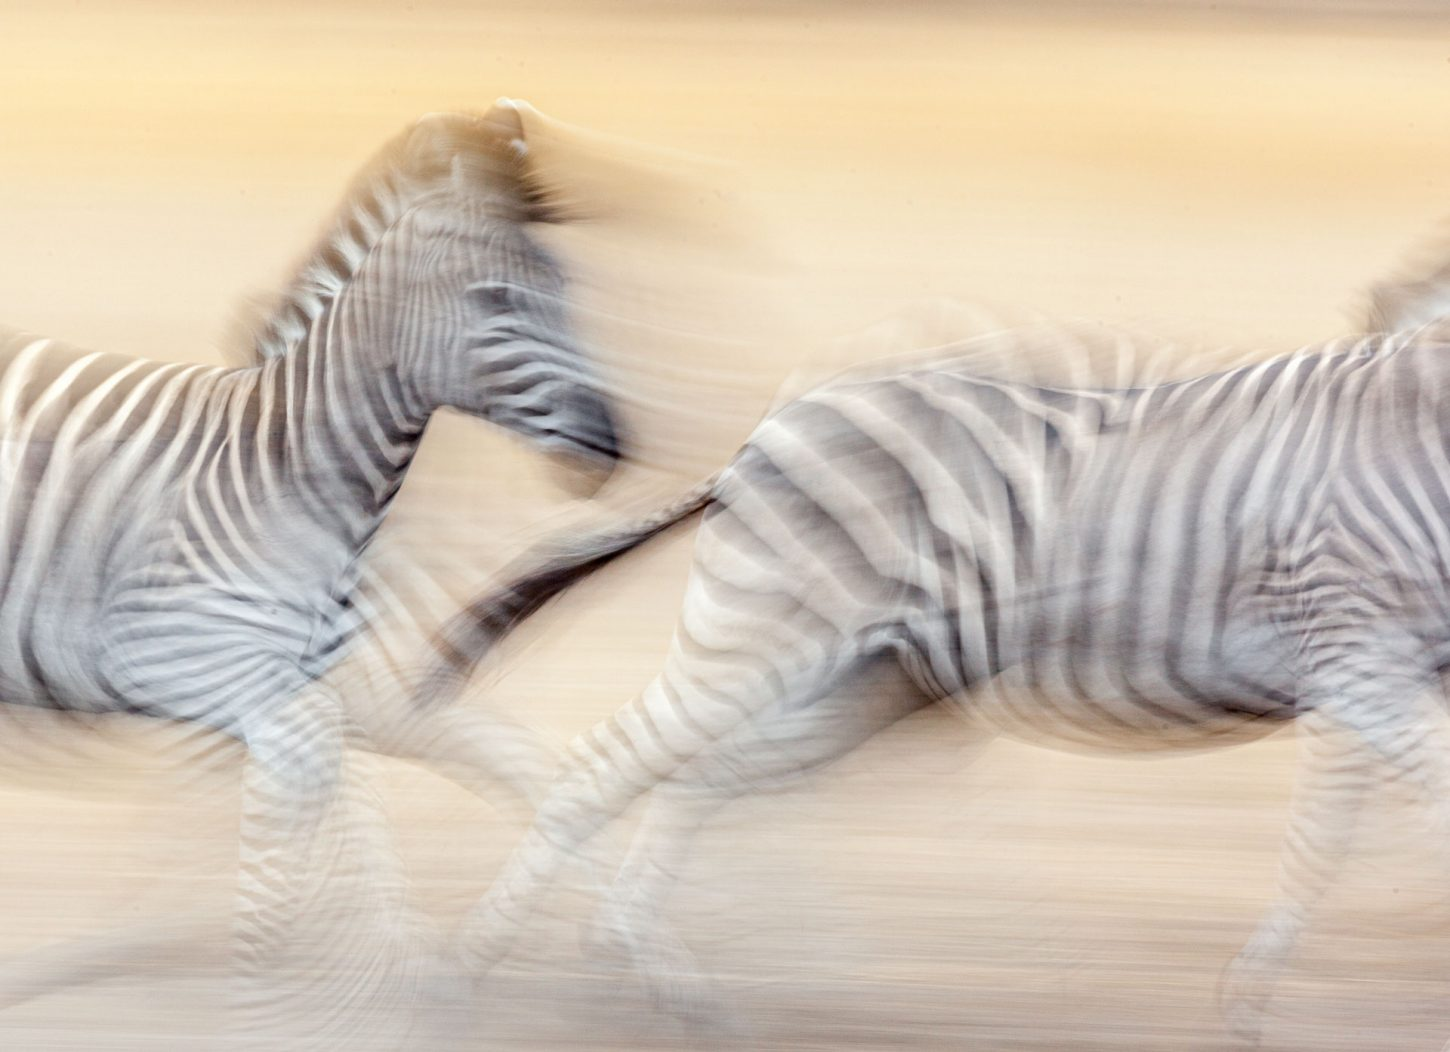 Zebras running, blurry with movement